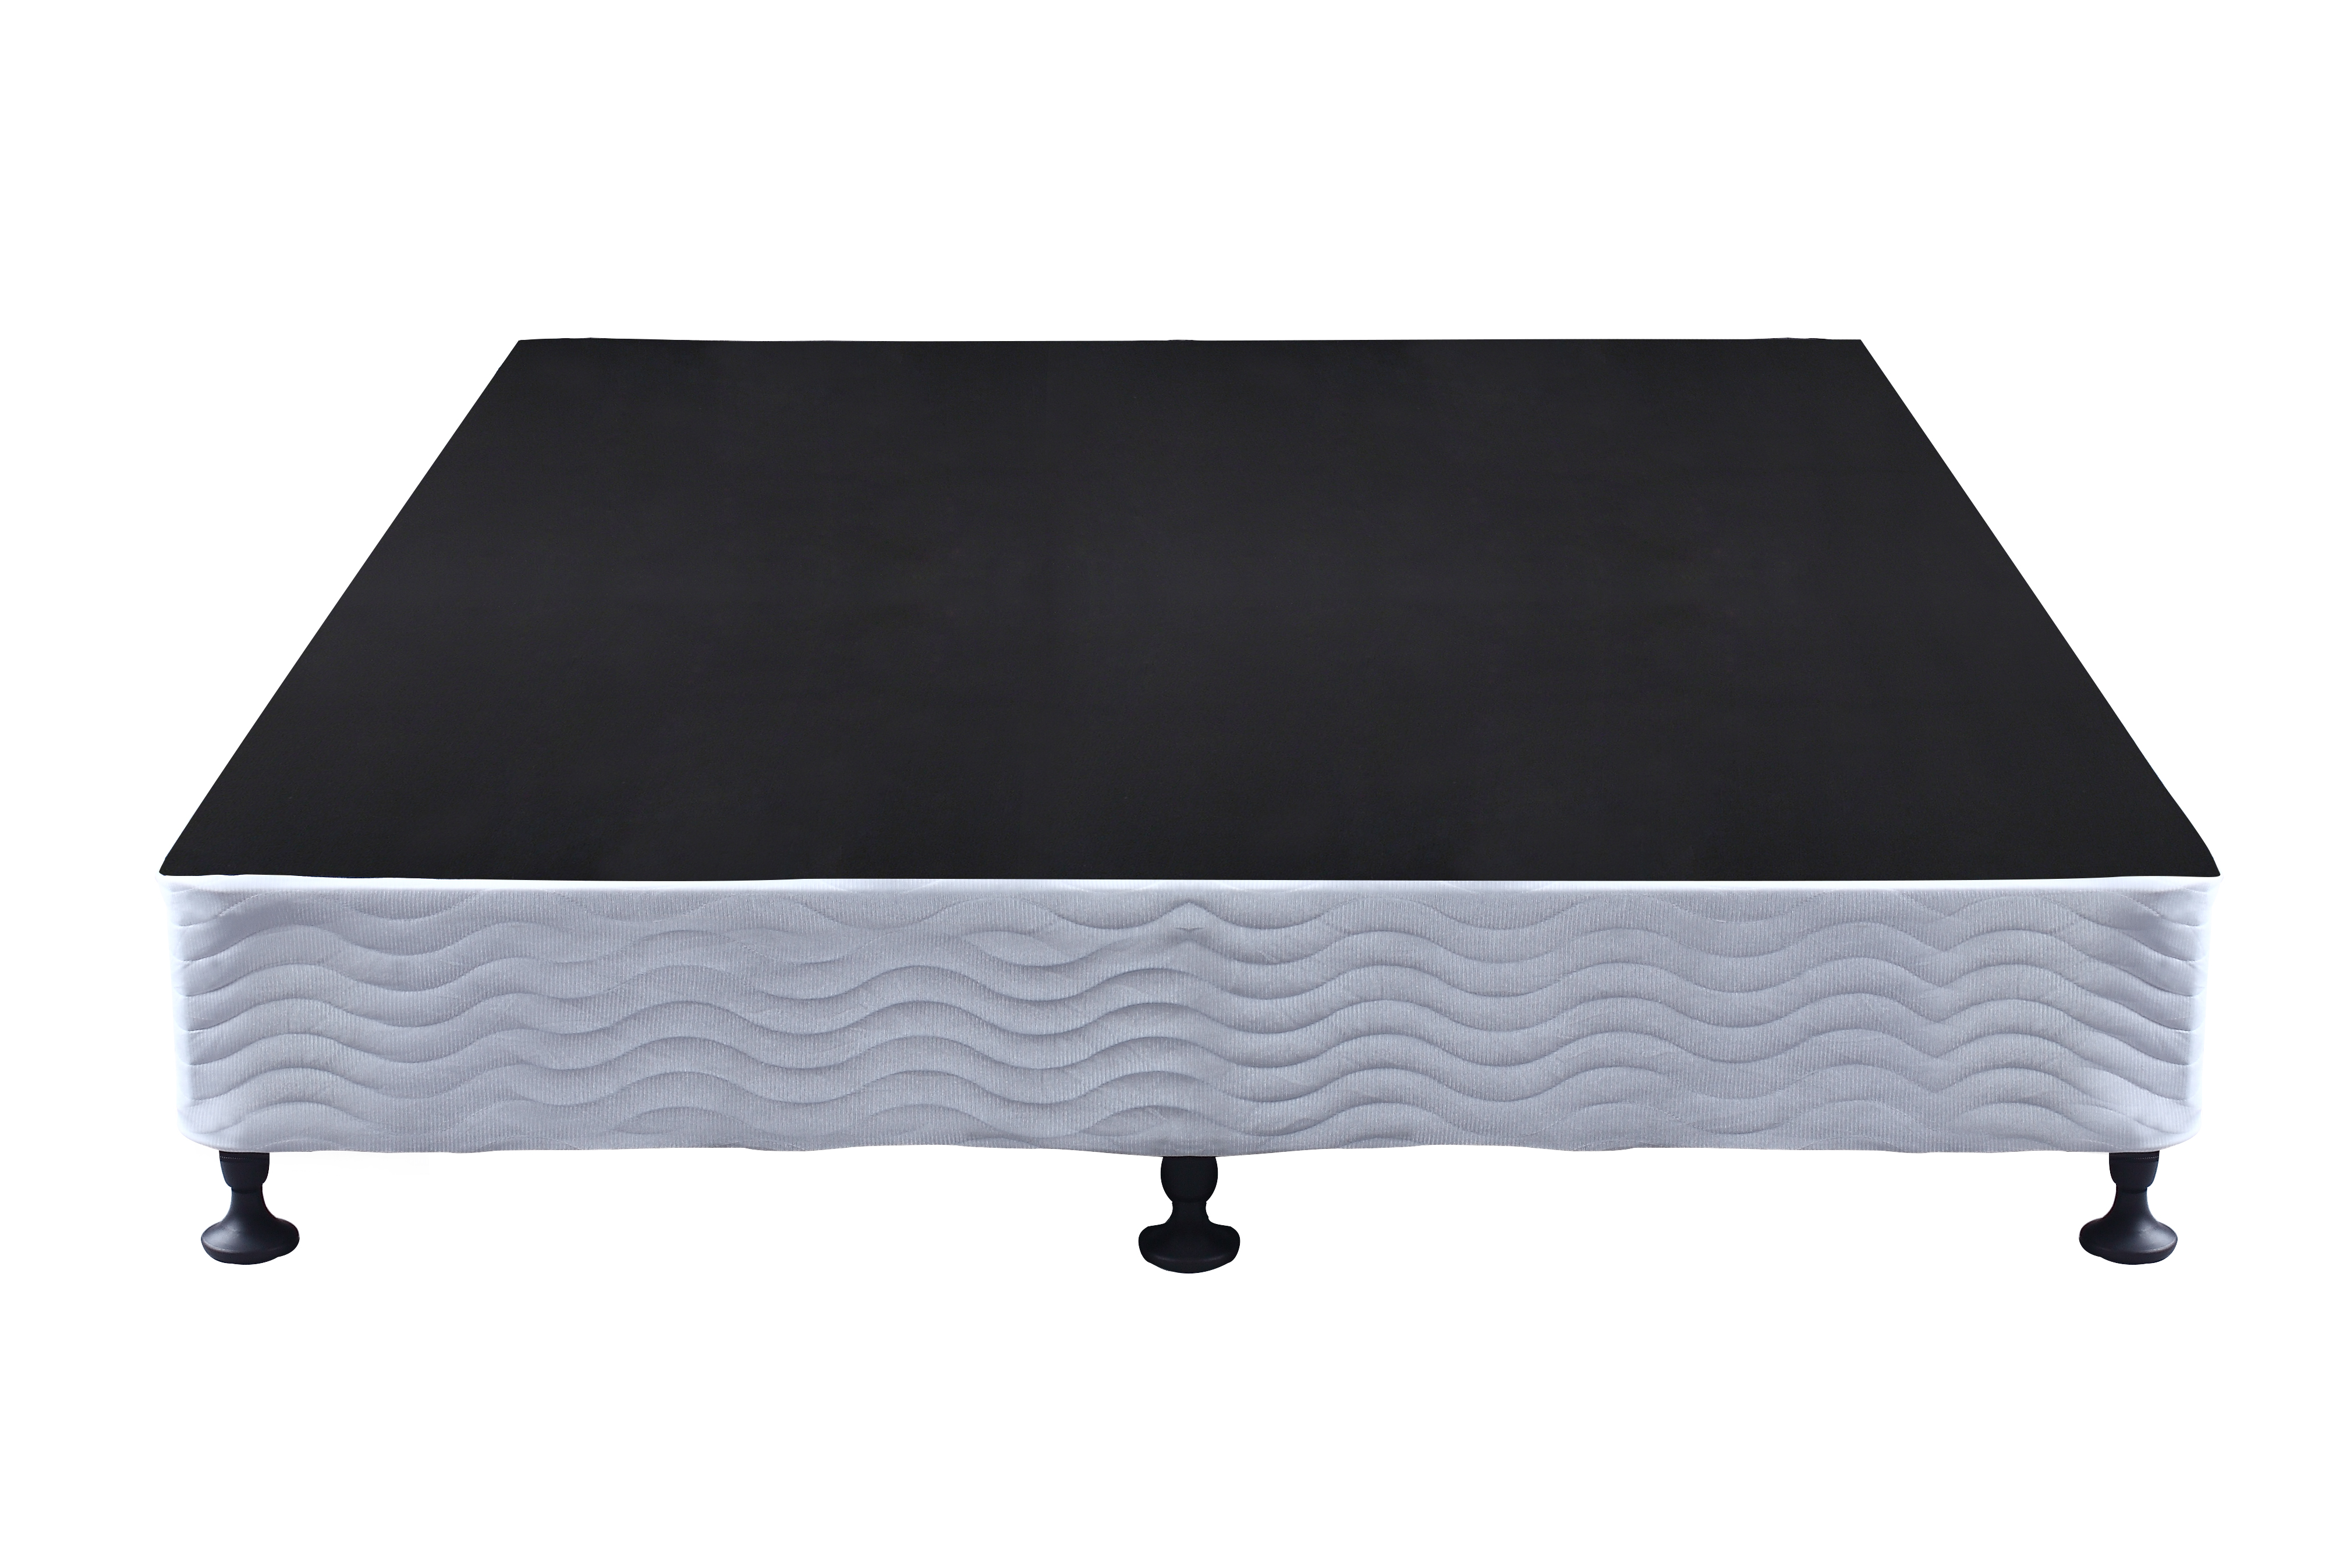 Steel Frame Box Spring For Full Size Bed, Mattress Box